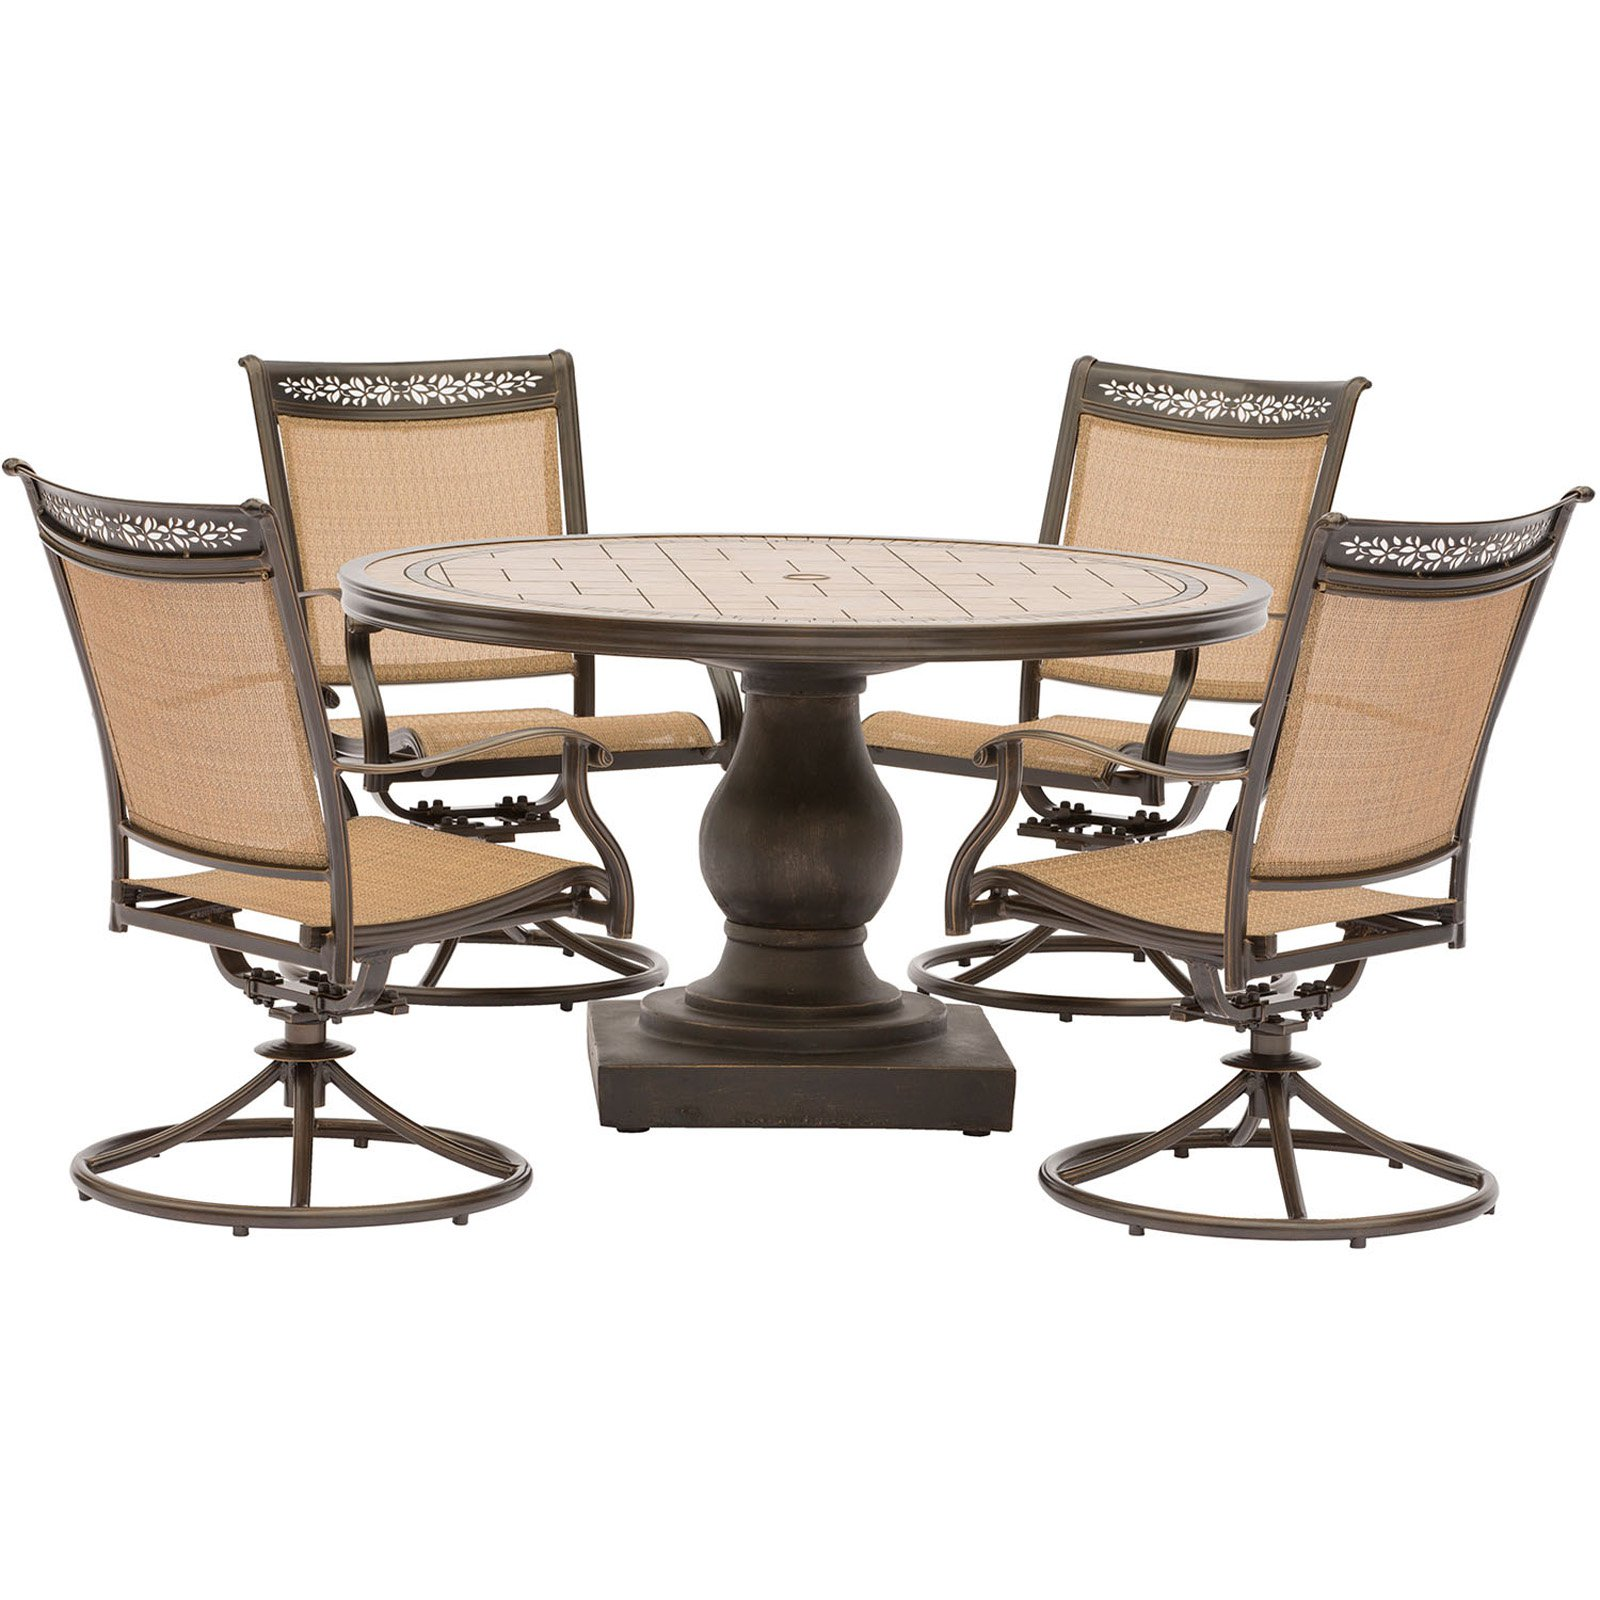 Hanover Fontana 5-Piece Outdoor Dining Room Set with Swivel Rockers and Tile-Top Table by Hanover